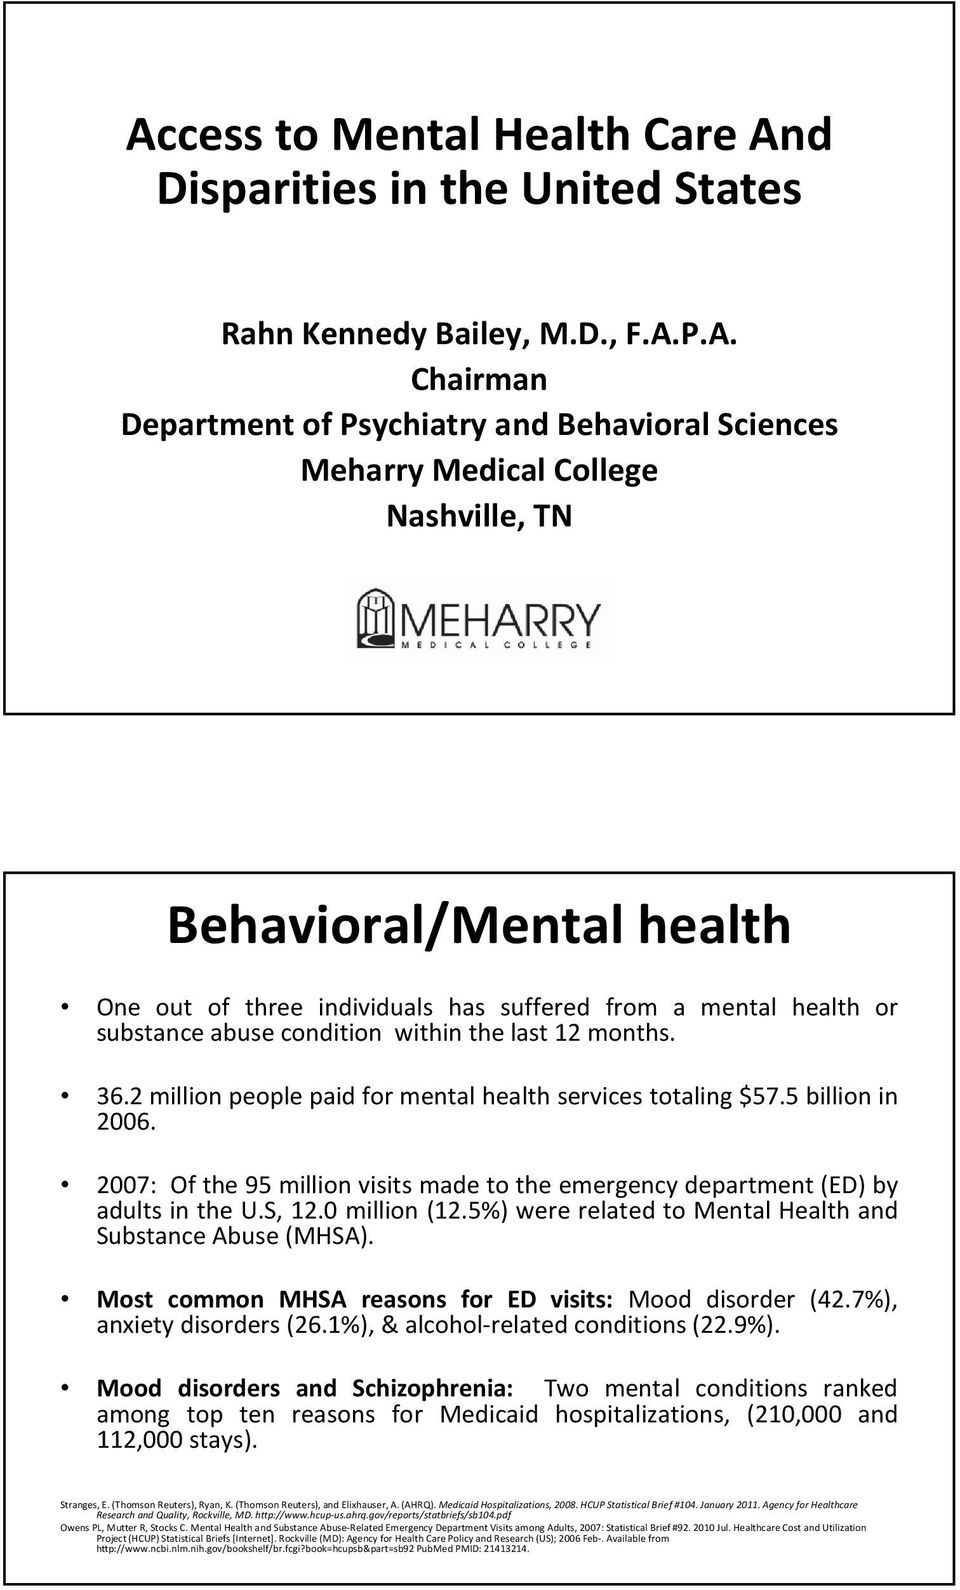 2 million people paid for mental health services totaling $57.5 billion in 2006. 2007: Of the 95 million visits made to the emergency department (ED) by adults in the U.S, 12.0 million (12.